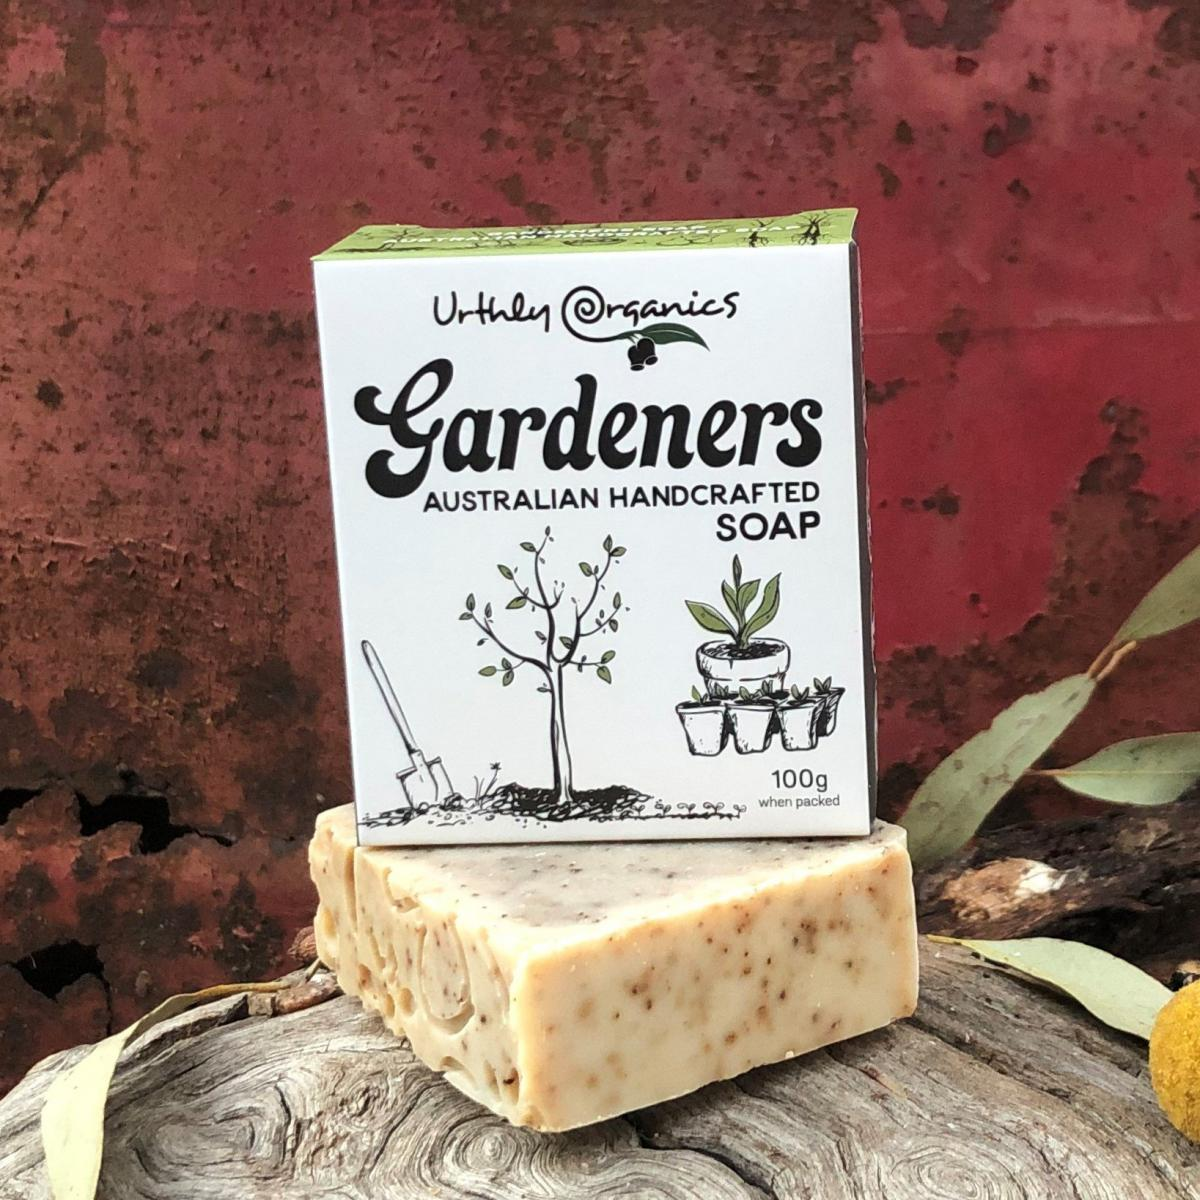 Gardeners Soap Bar - Urthly Organics - Bar Soap - Throw Some Seeds - Australian gardening gifts and eco products online!